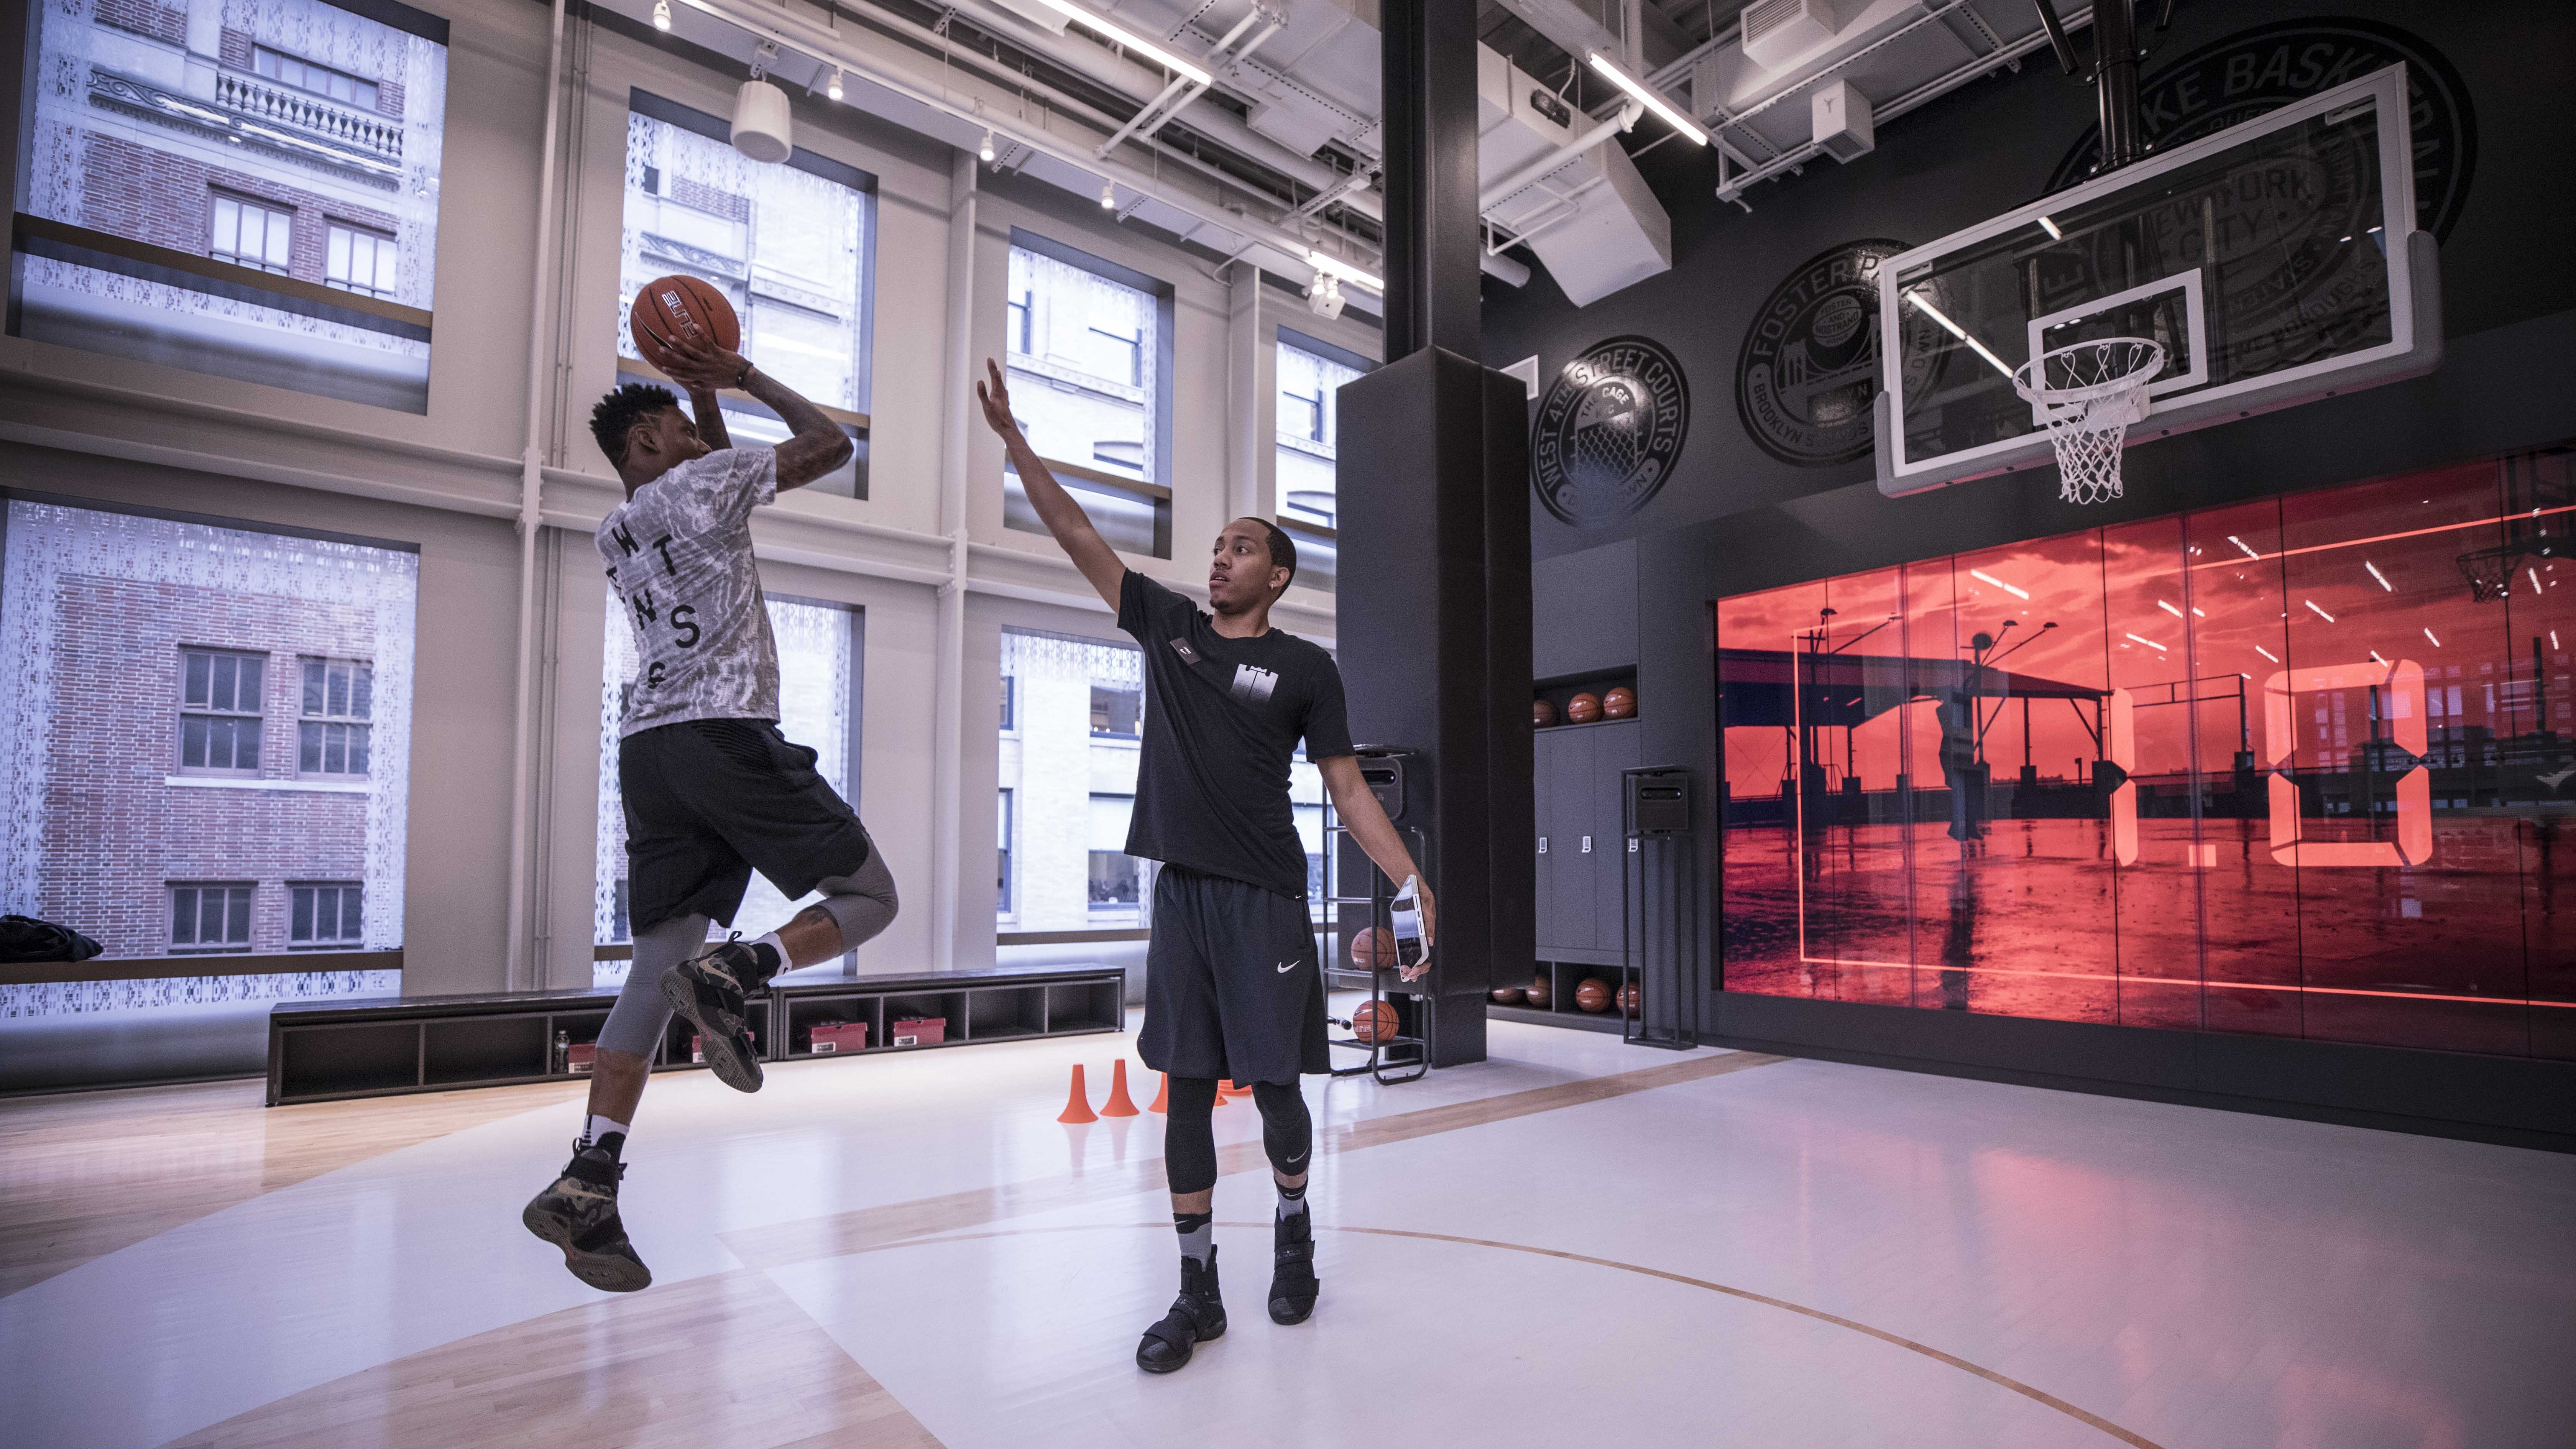 productos de calidad elige lo último gran surtido Nike's new store in New York has a basketball court where you can ...